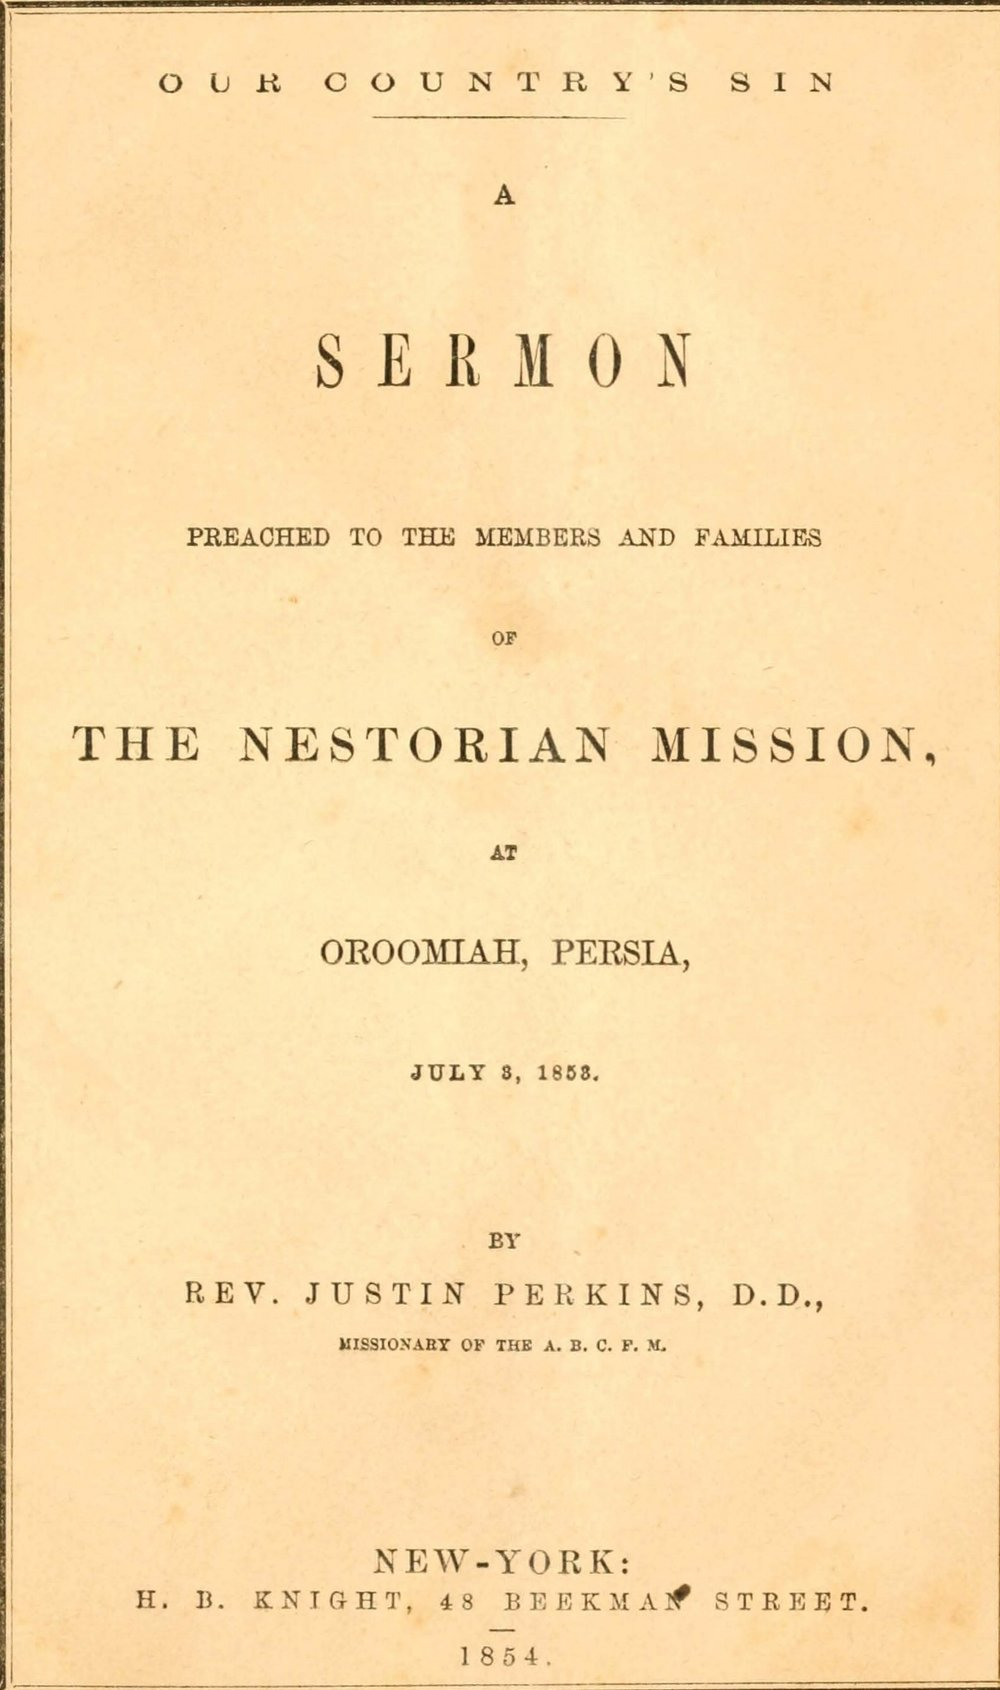 Perkins, Justin, Our Country's Sin Title Page.jpg